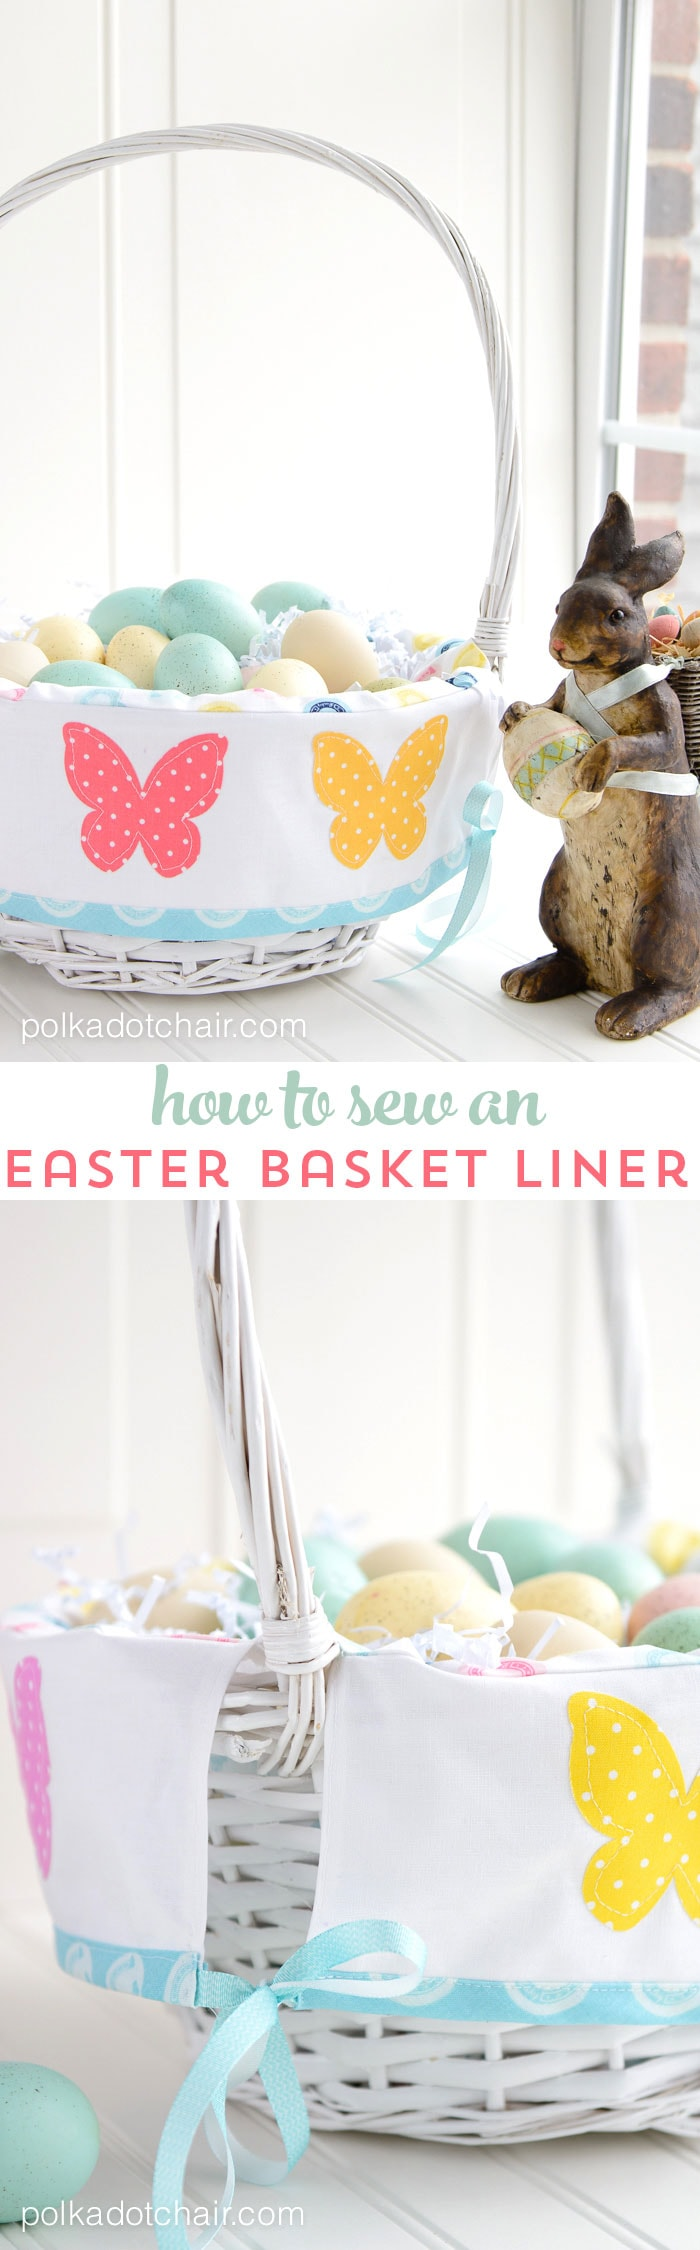 40 easter sewing projects ideas the polka dot chair learn how to easily sew a custom liner for an easter basket negle Gallery